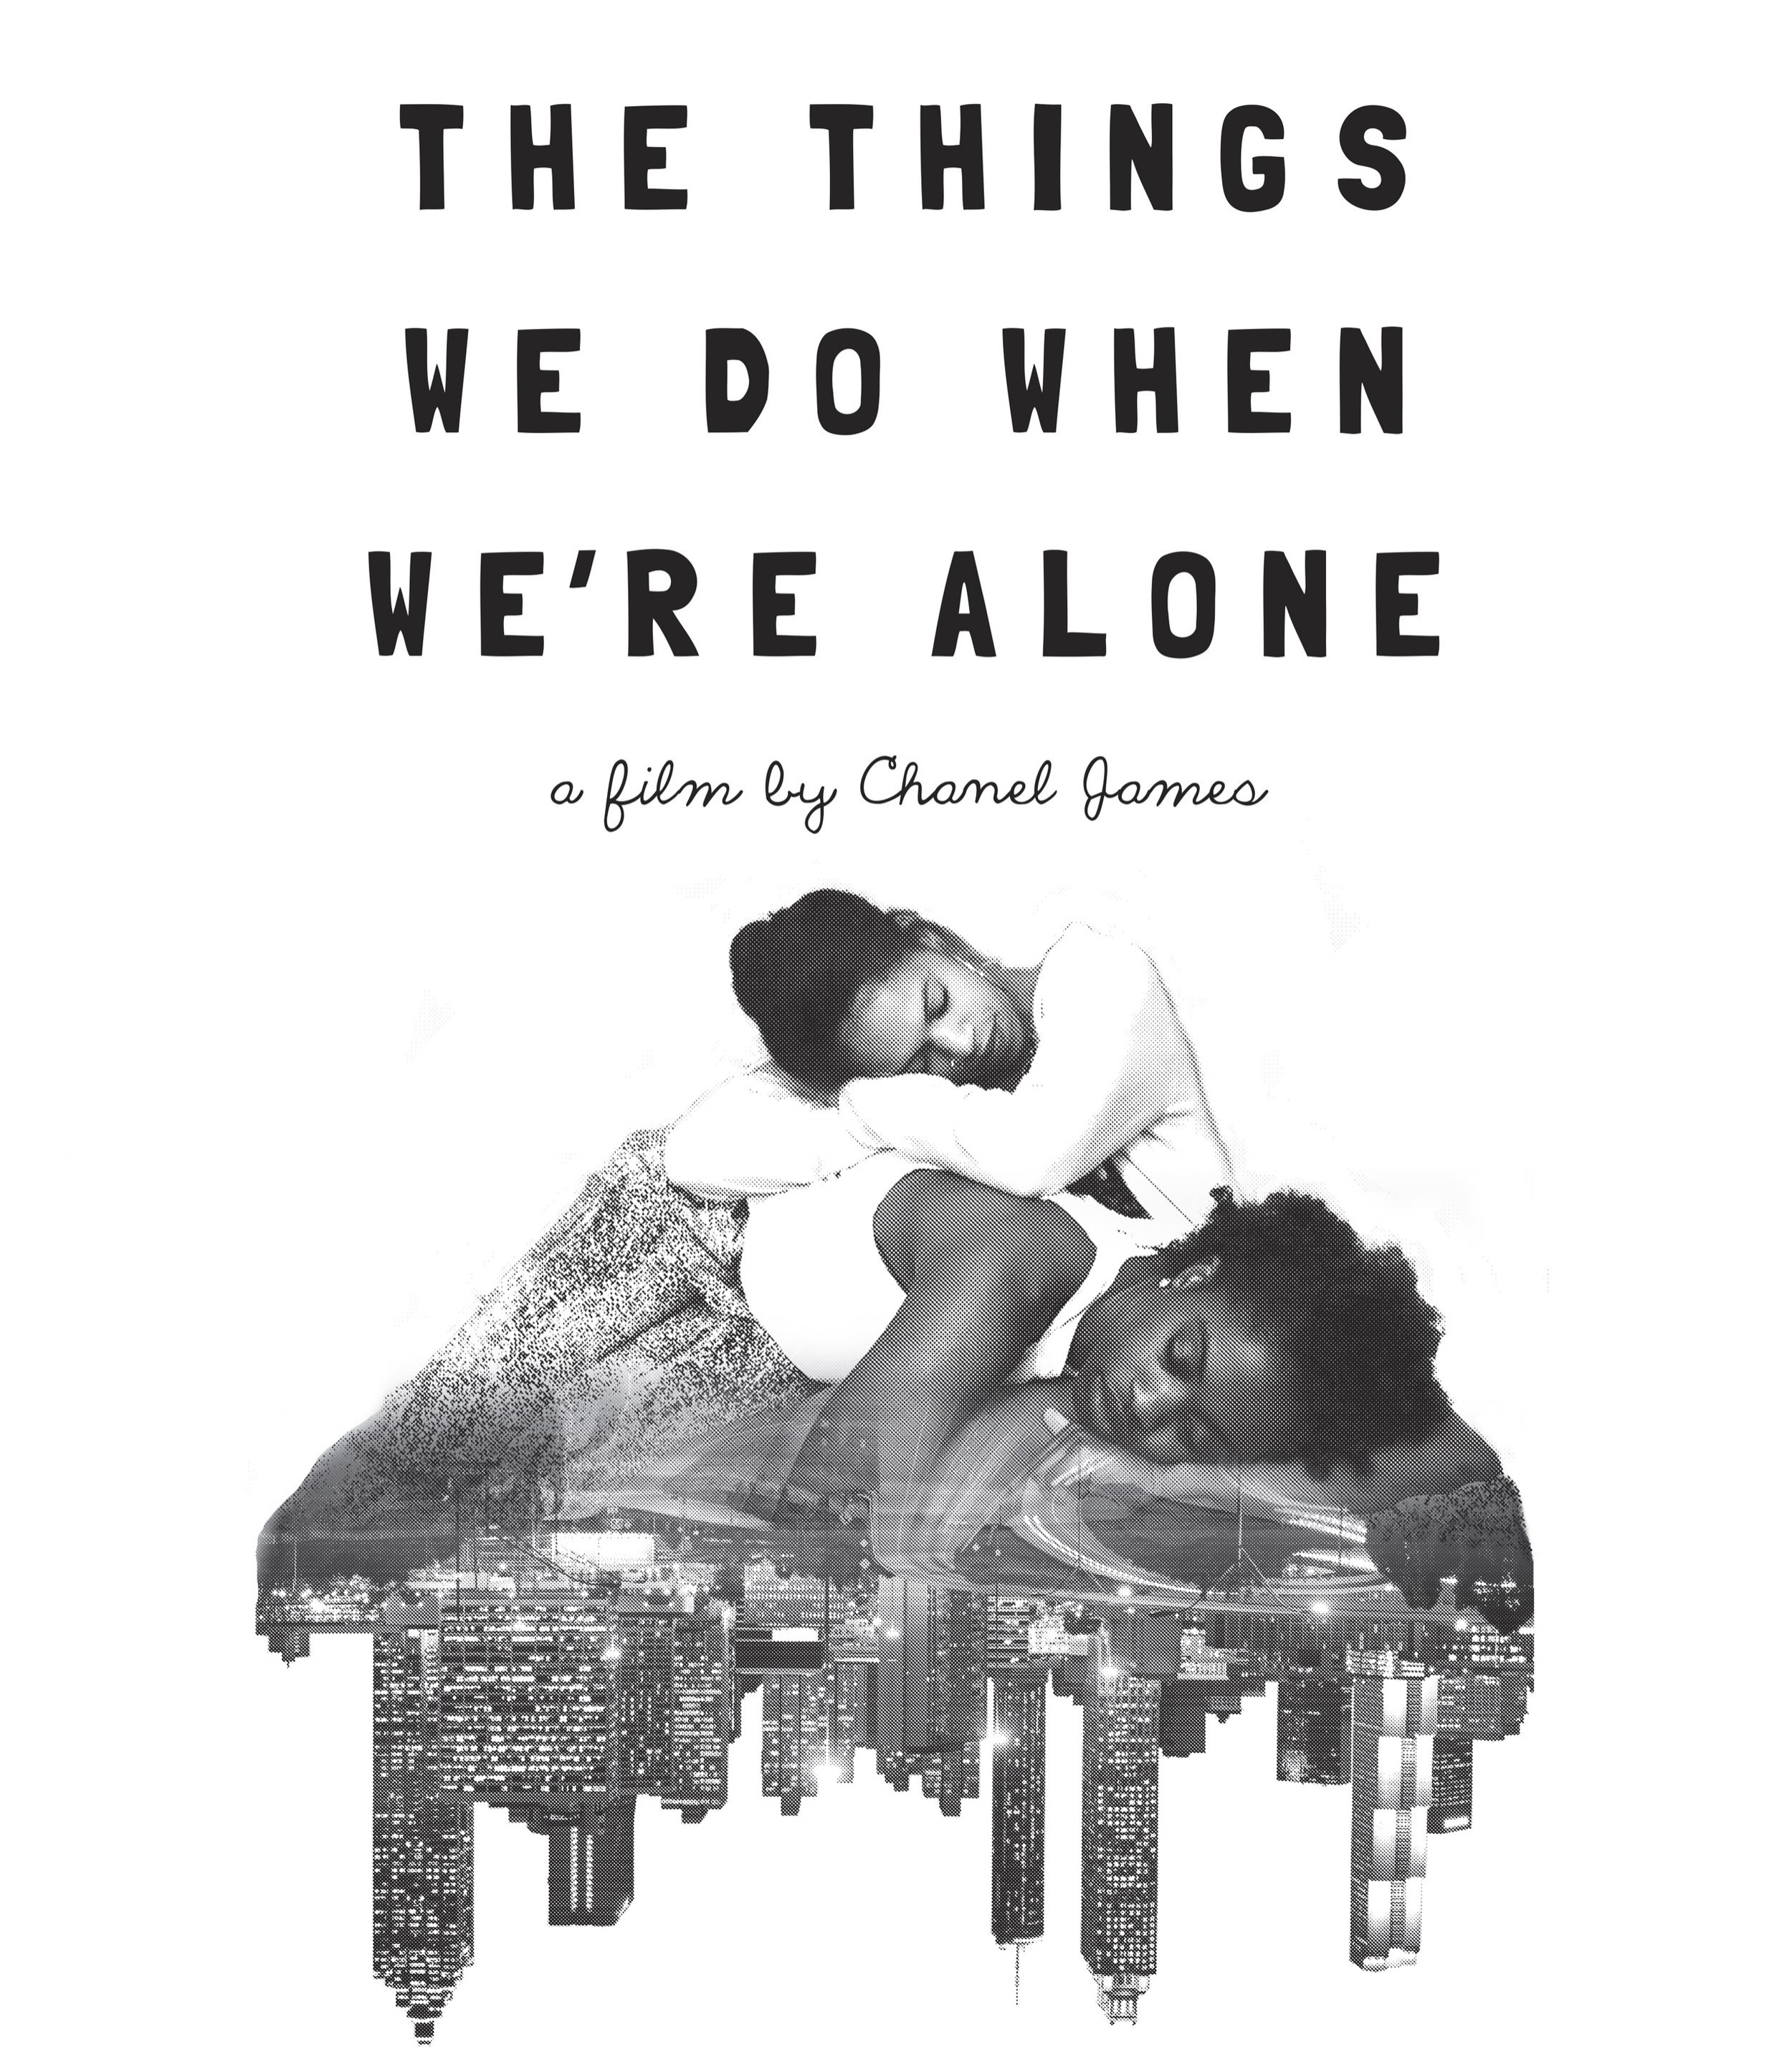 The Things We Do When We're Alone - Poster Image